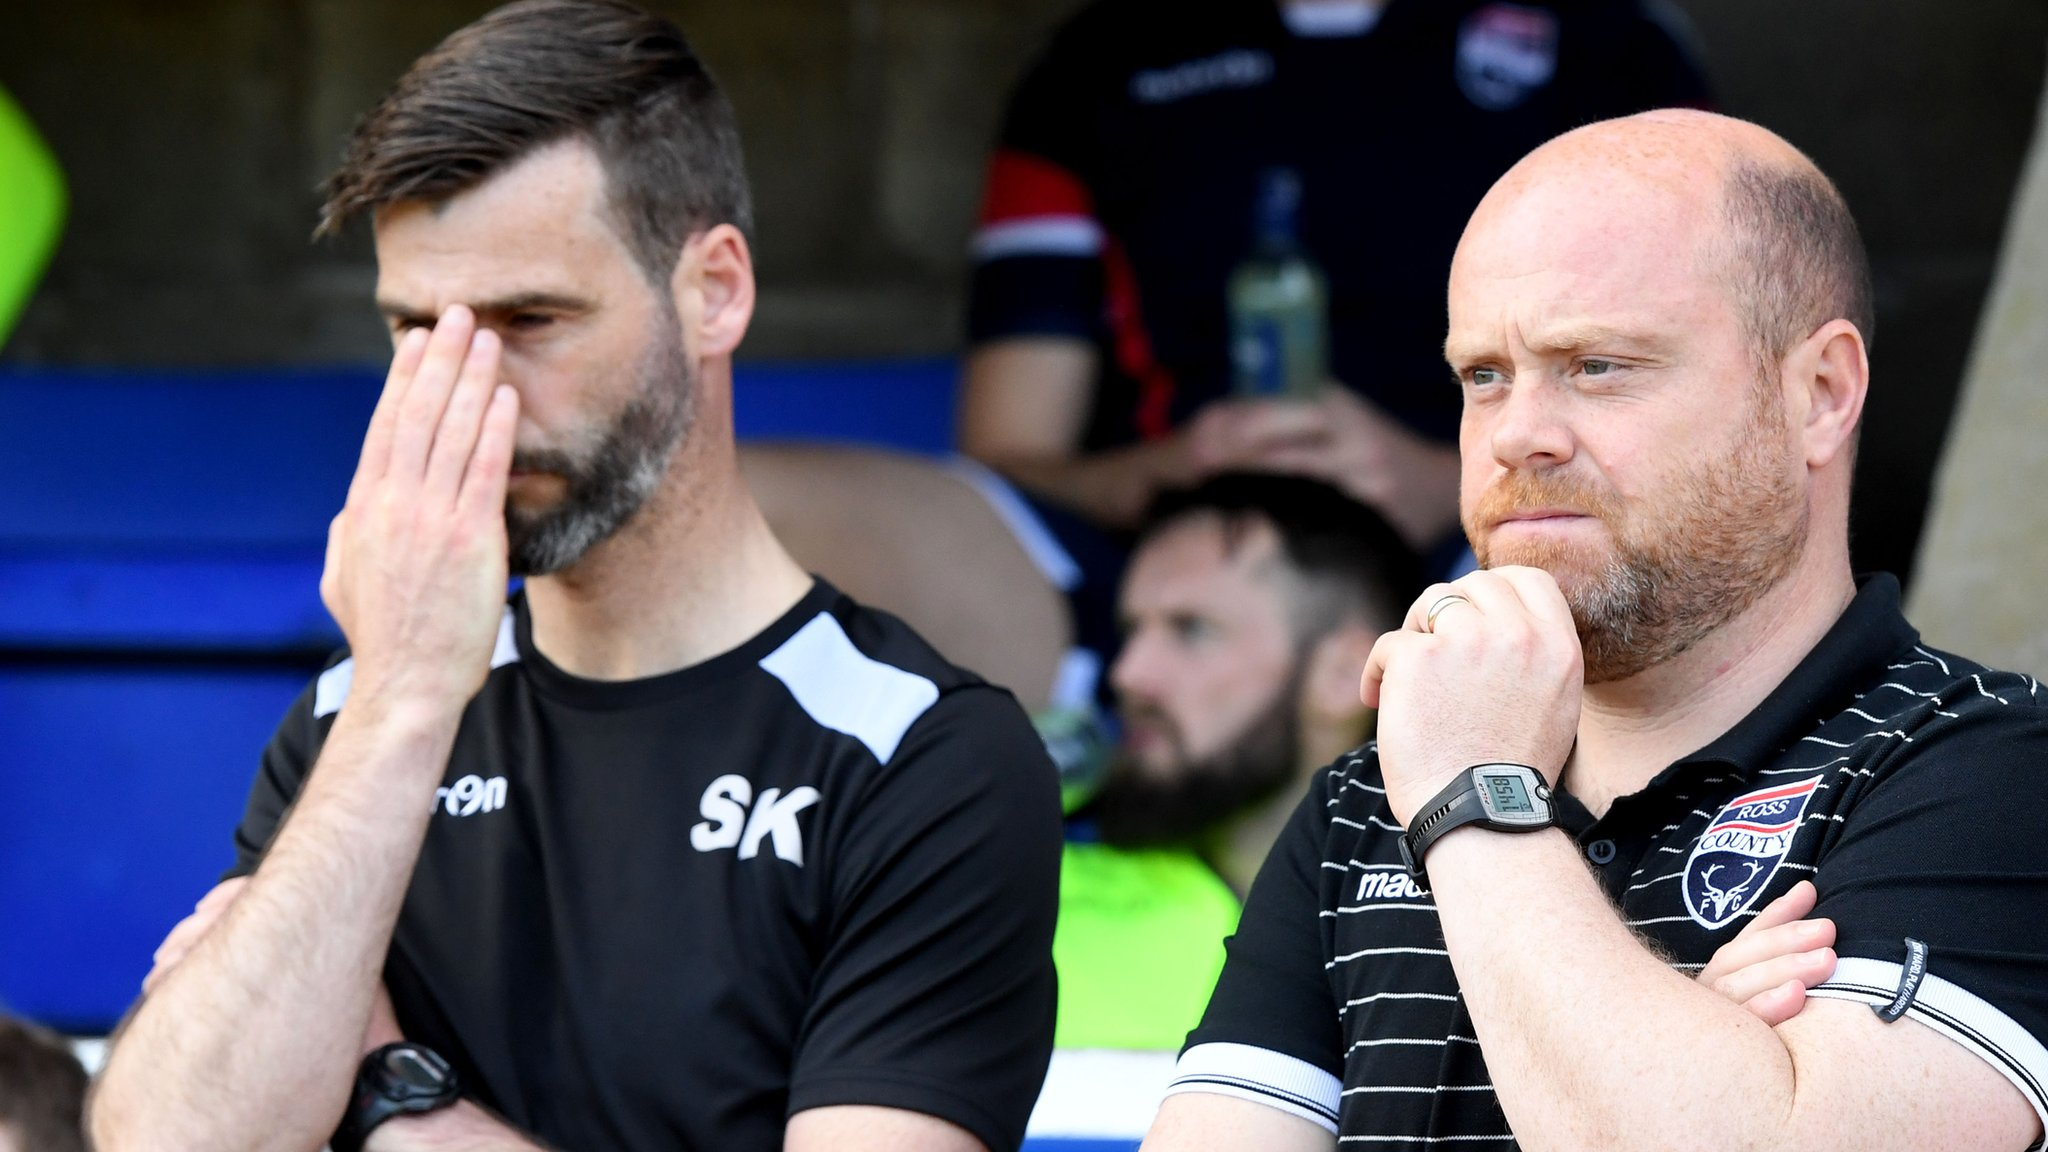 Ross County & Inverness Caley Thistle 'will rise again' - Barry Wilson